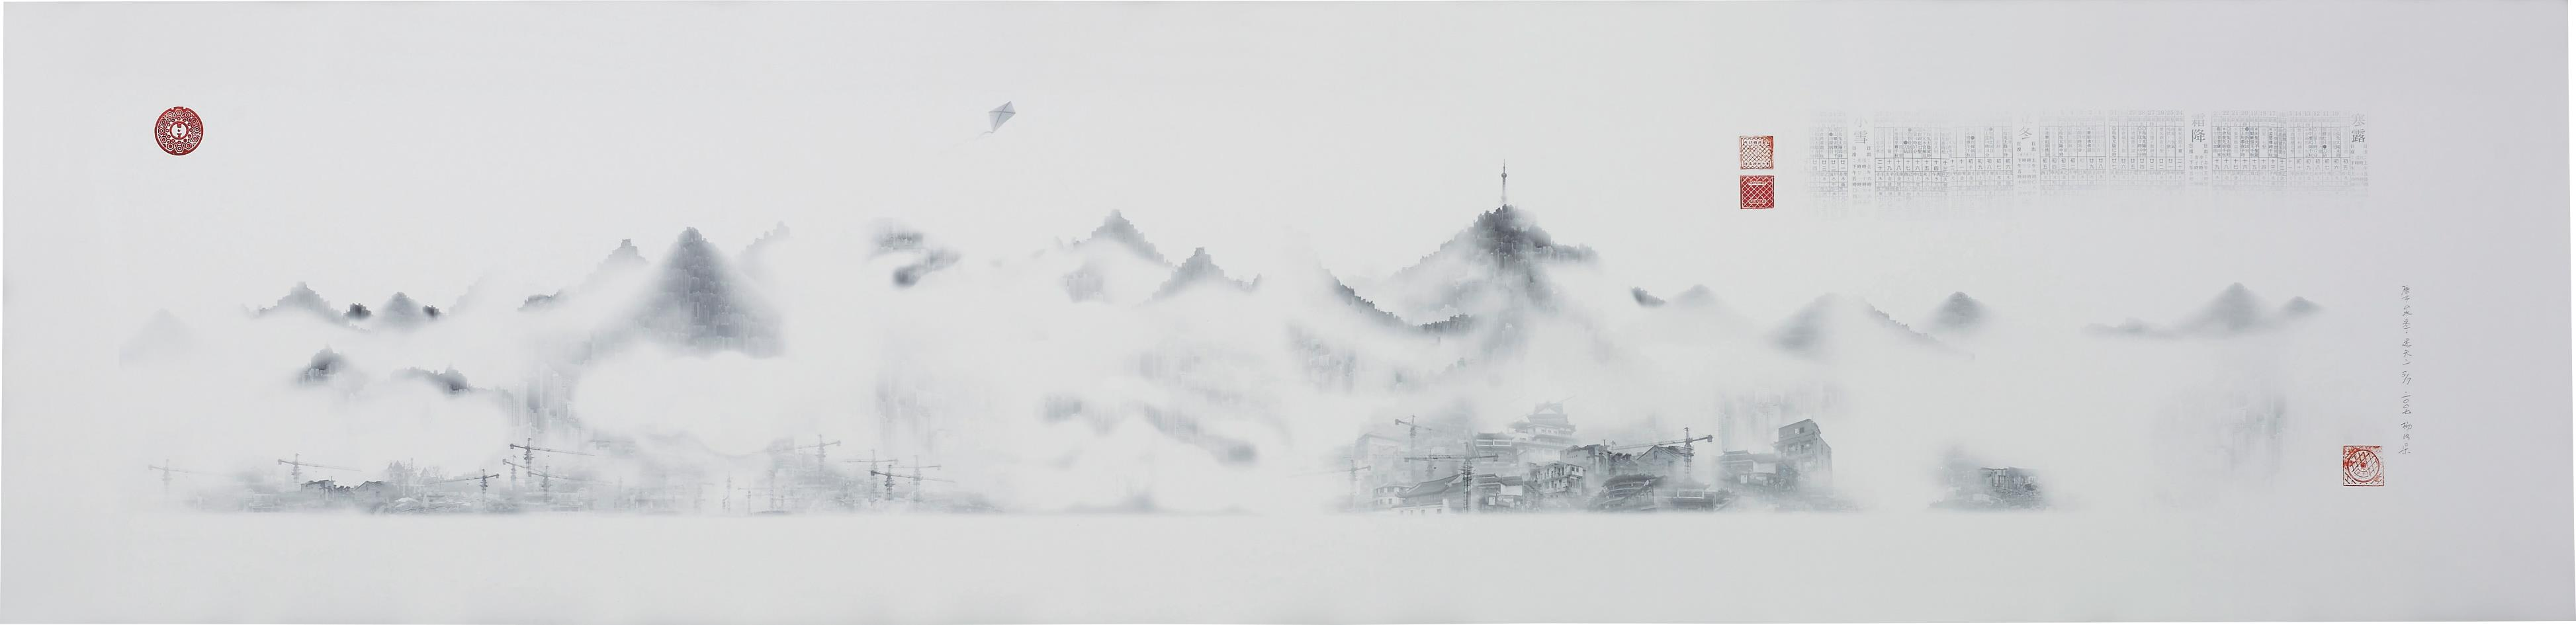 Yang Yongliang-Misty City-2008